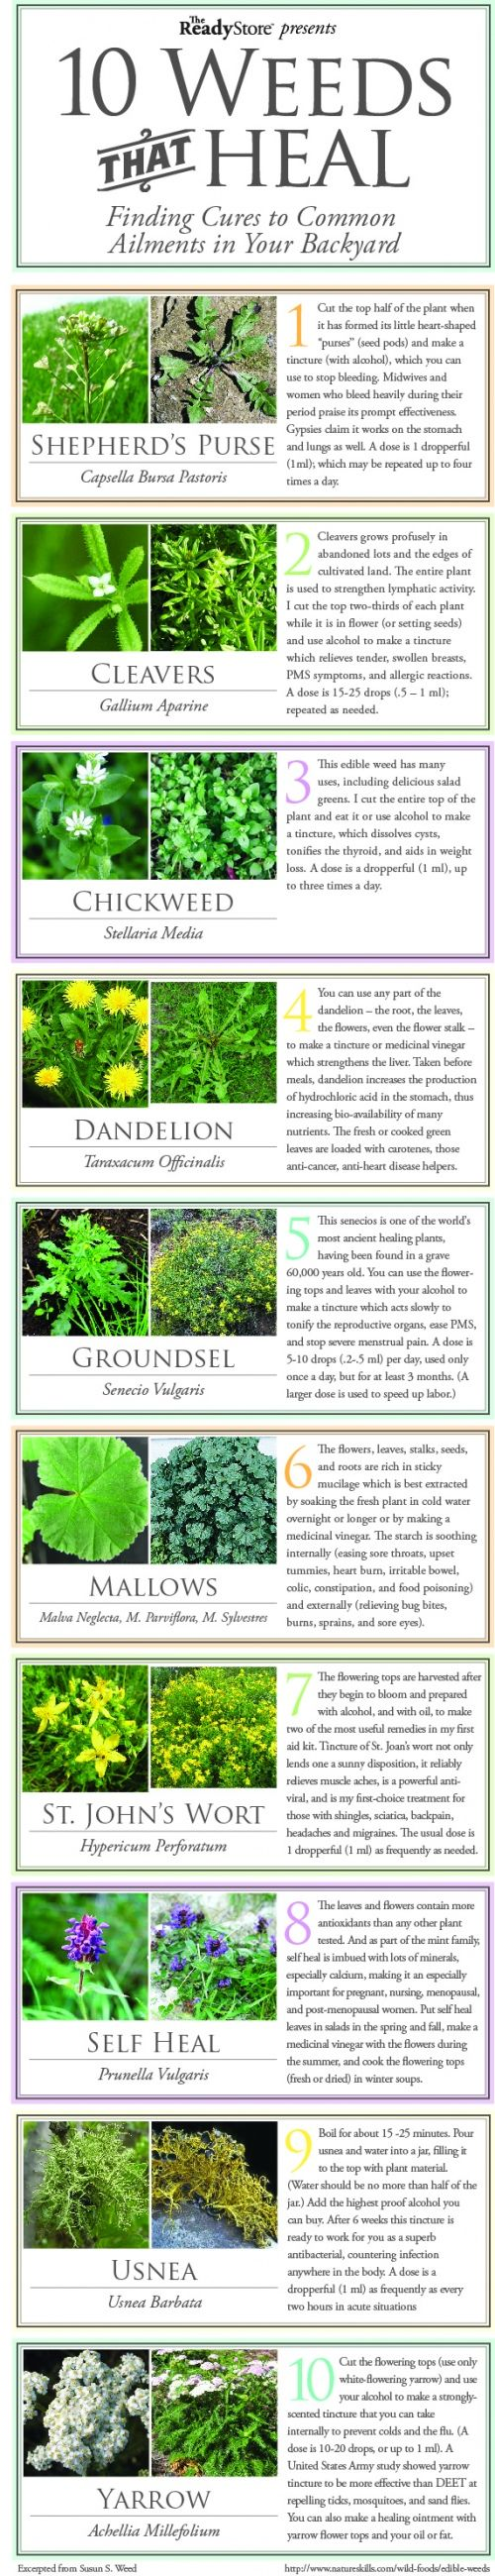 10 common weeds that can heal you